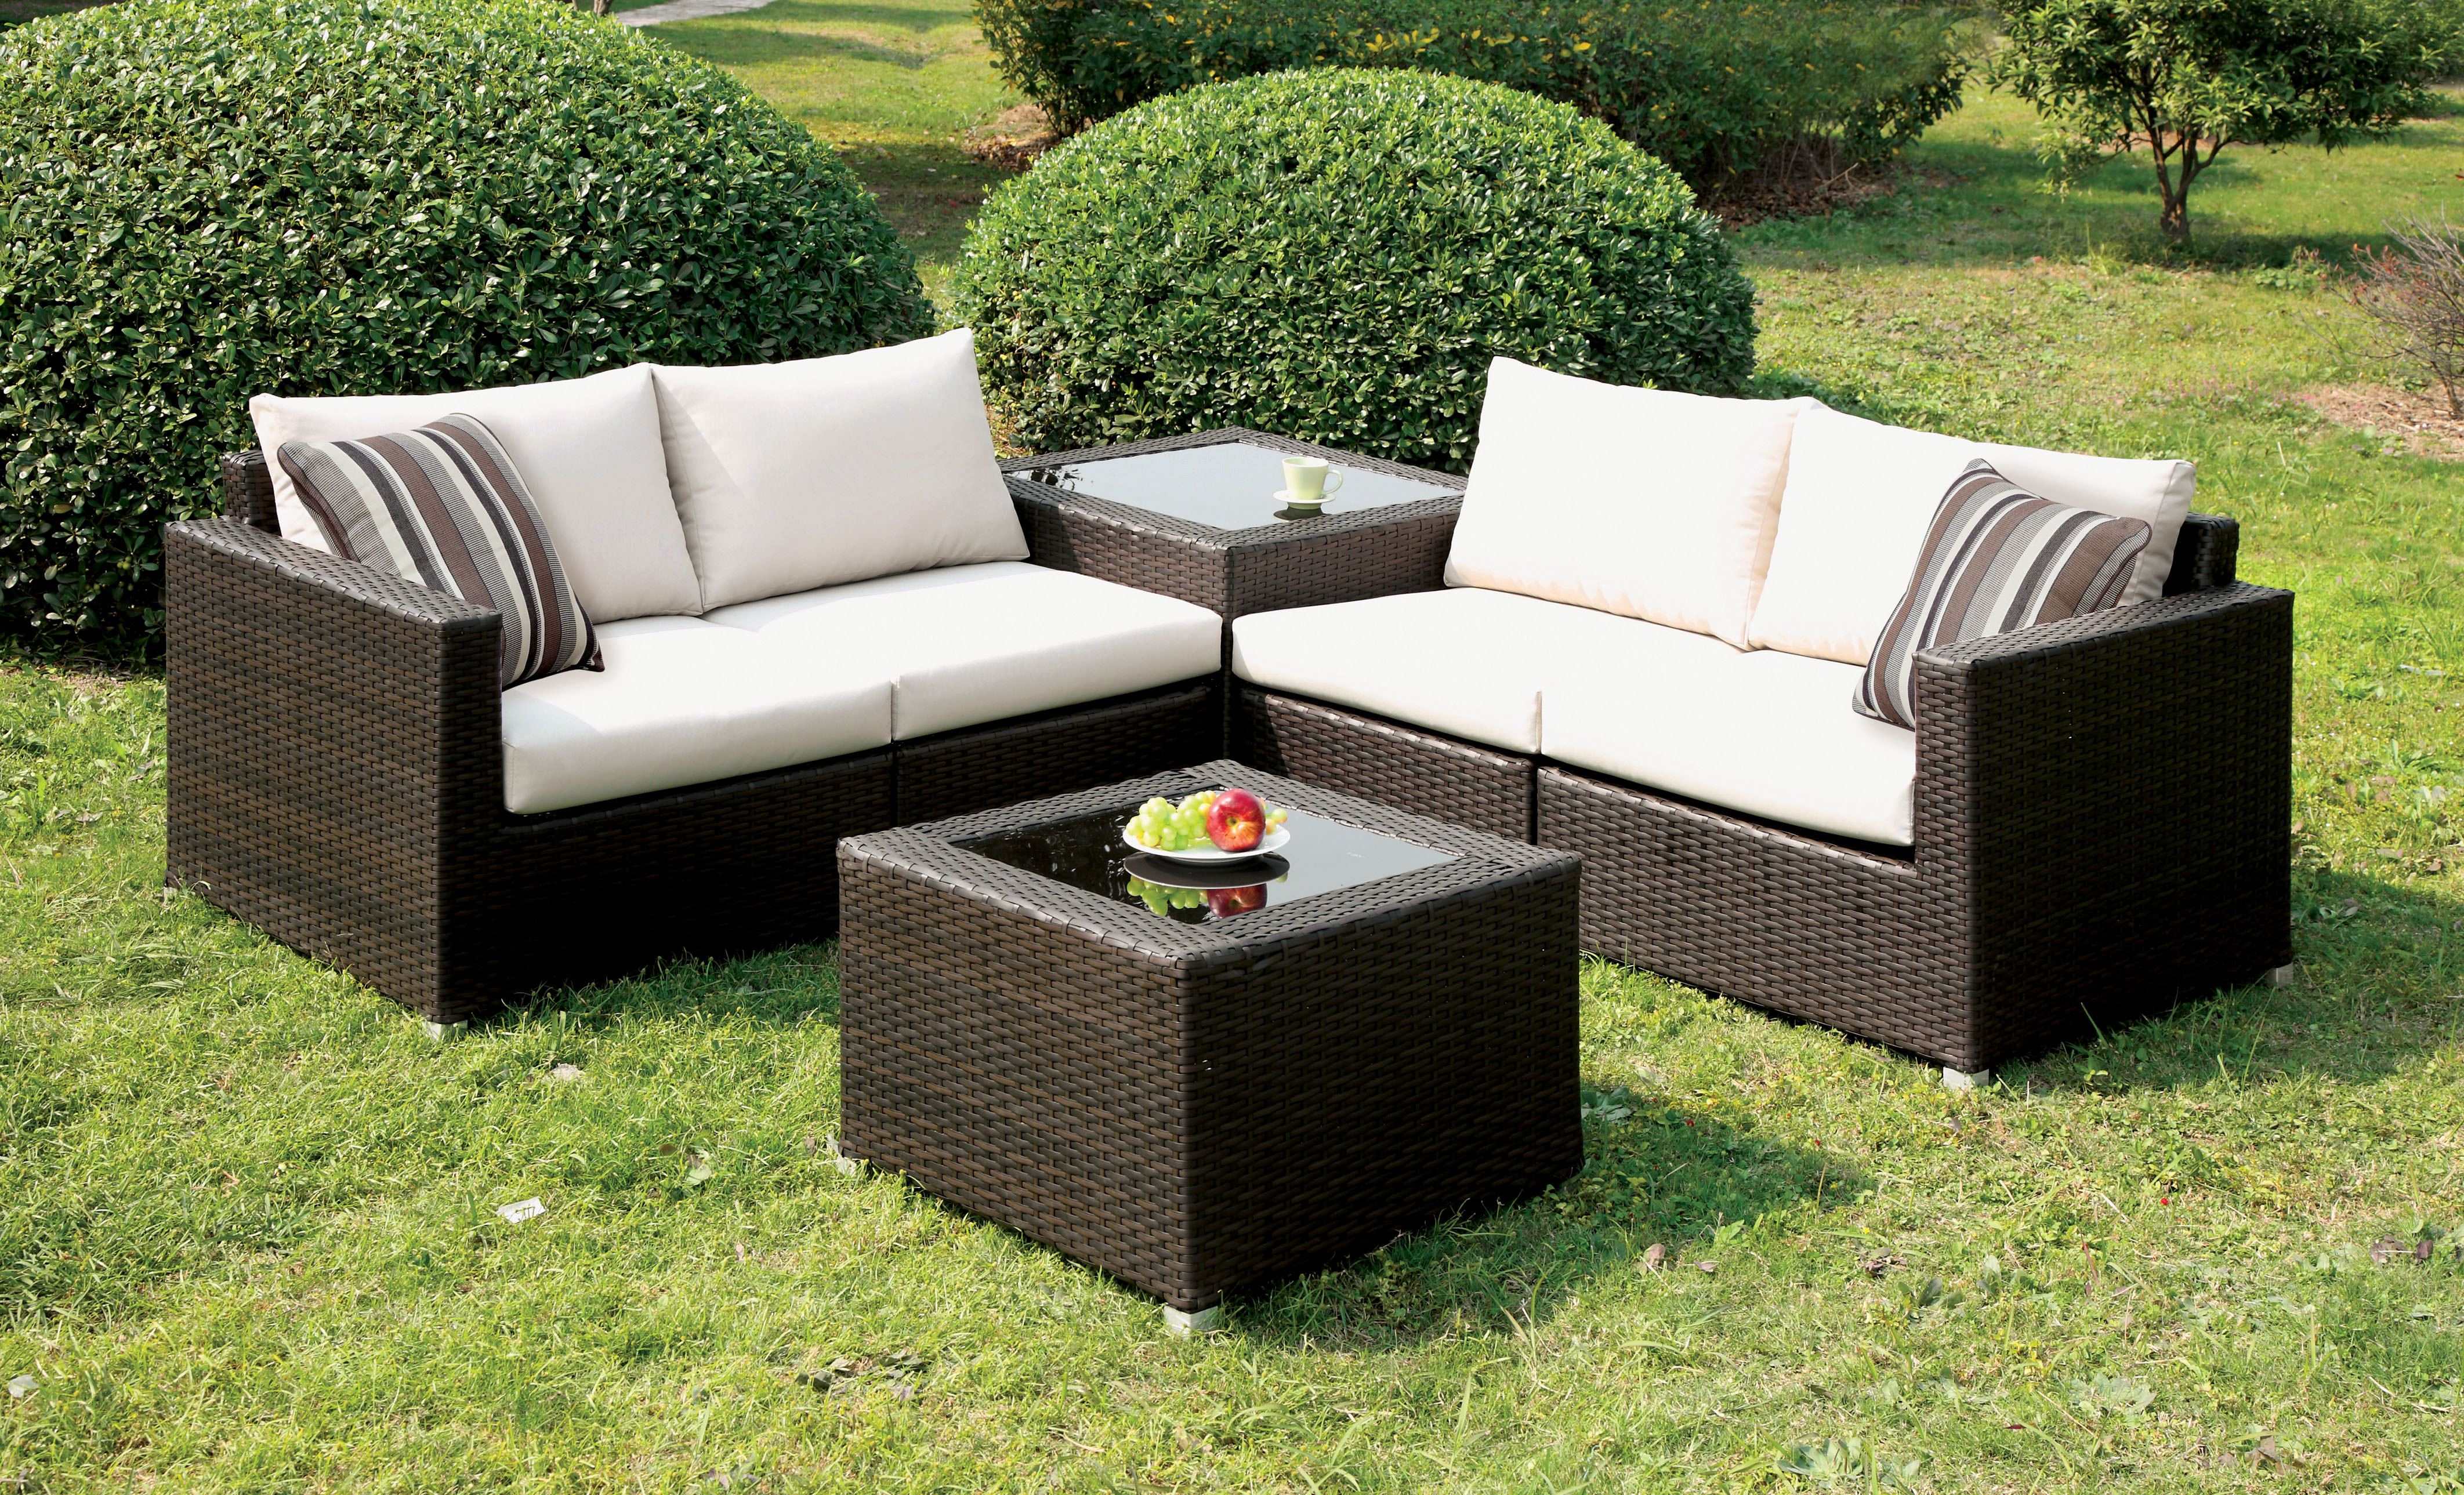 Furniture of America Arbore 4 Piece Patio Sectional Set ... on Casual Living Patio id=27828